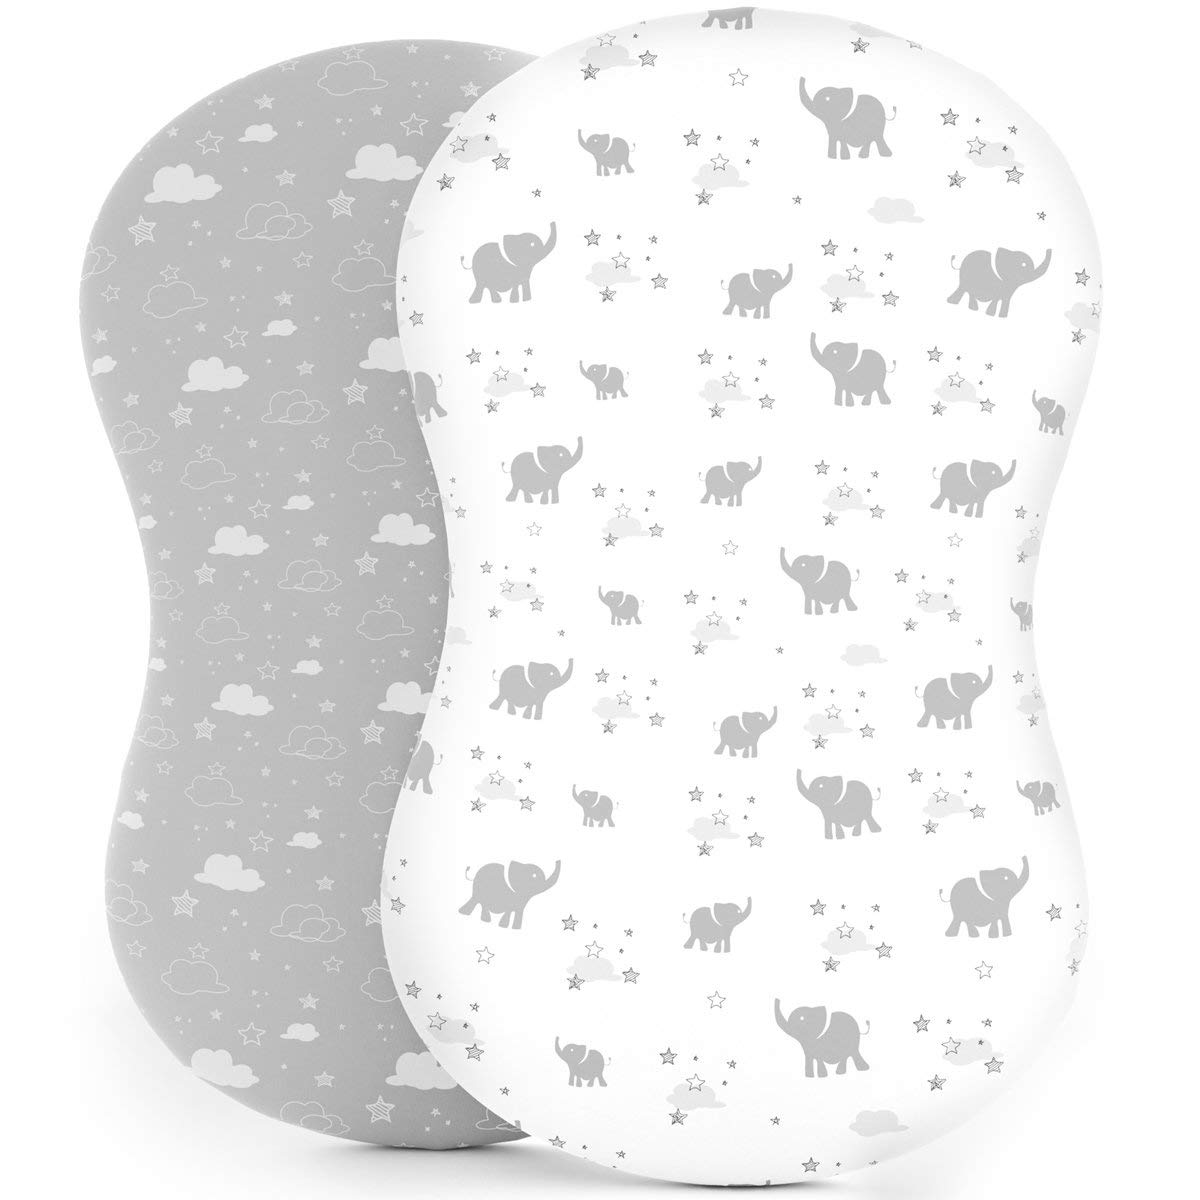 Bassinet Sheets - Fitted, Premium Jersey Cotton - Baby Bedside Sleeper Cover - Universal Sheet Set for Rectangle, Oval, or Hourglass Bassinet Mattress White 2 Pack Unisex - Elephants, Stars, & Clouds